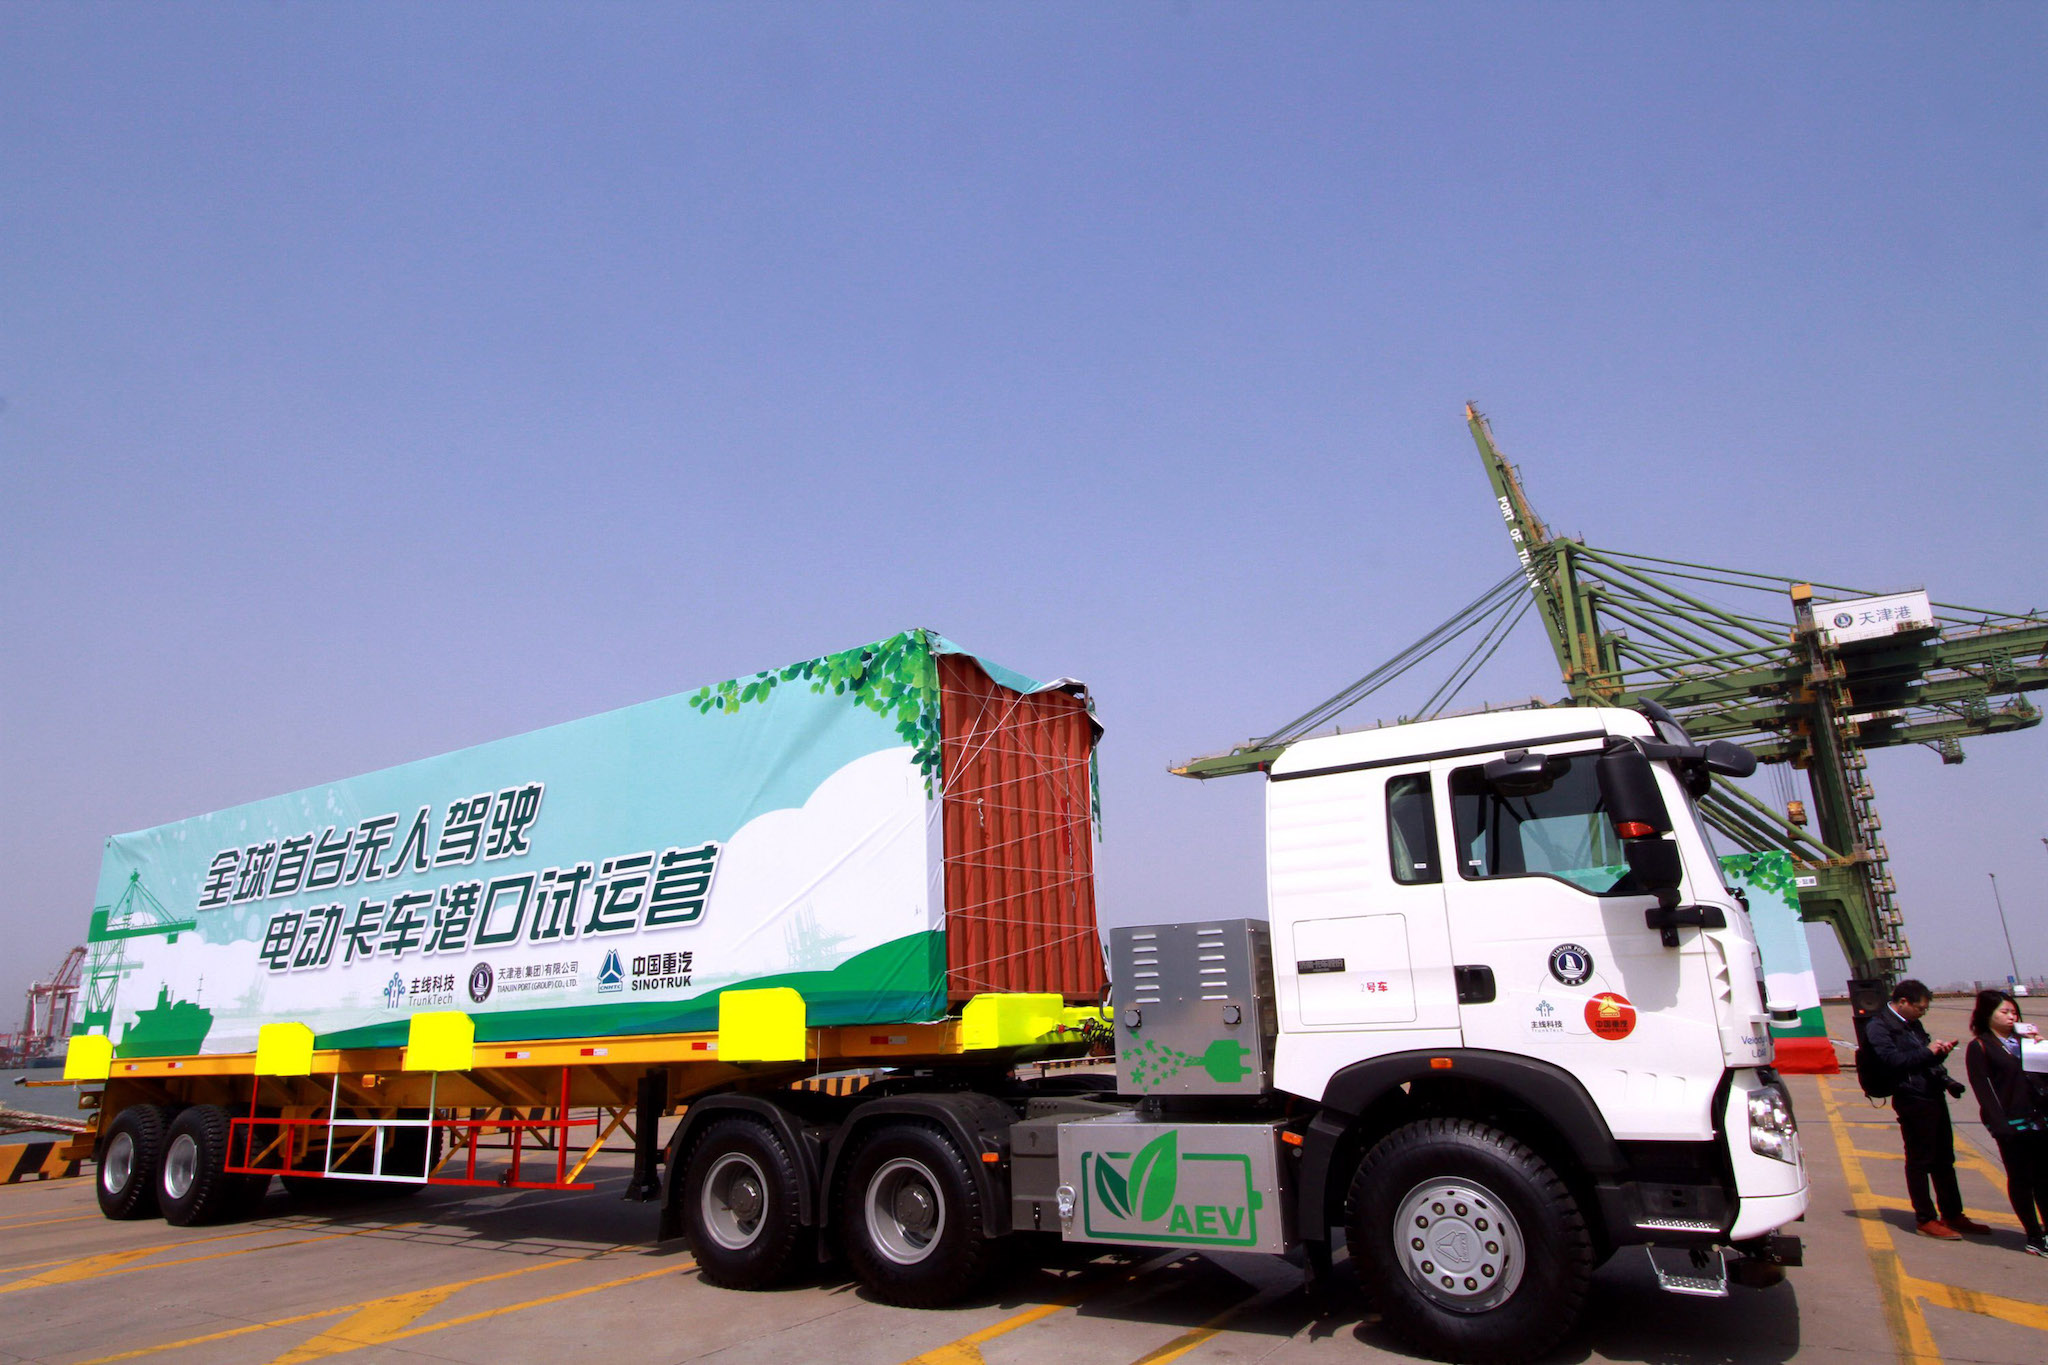 A self-driving electric truck moves a shipping container during its trial run at Tianjin Port on April 12, 2018 in Tianjin, China.